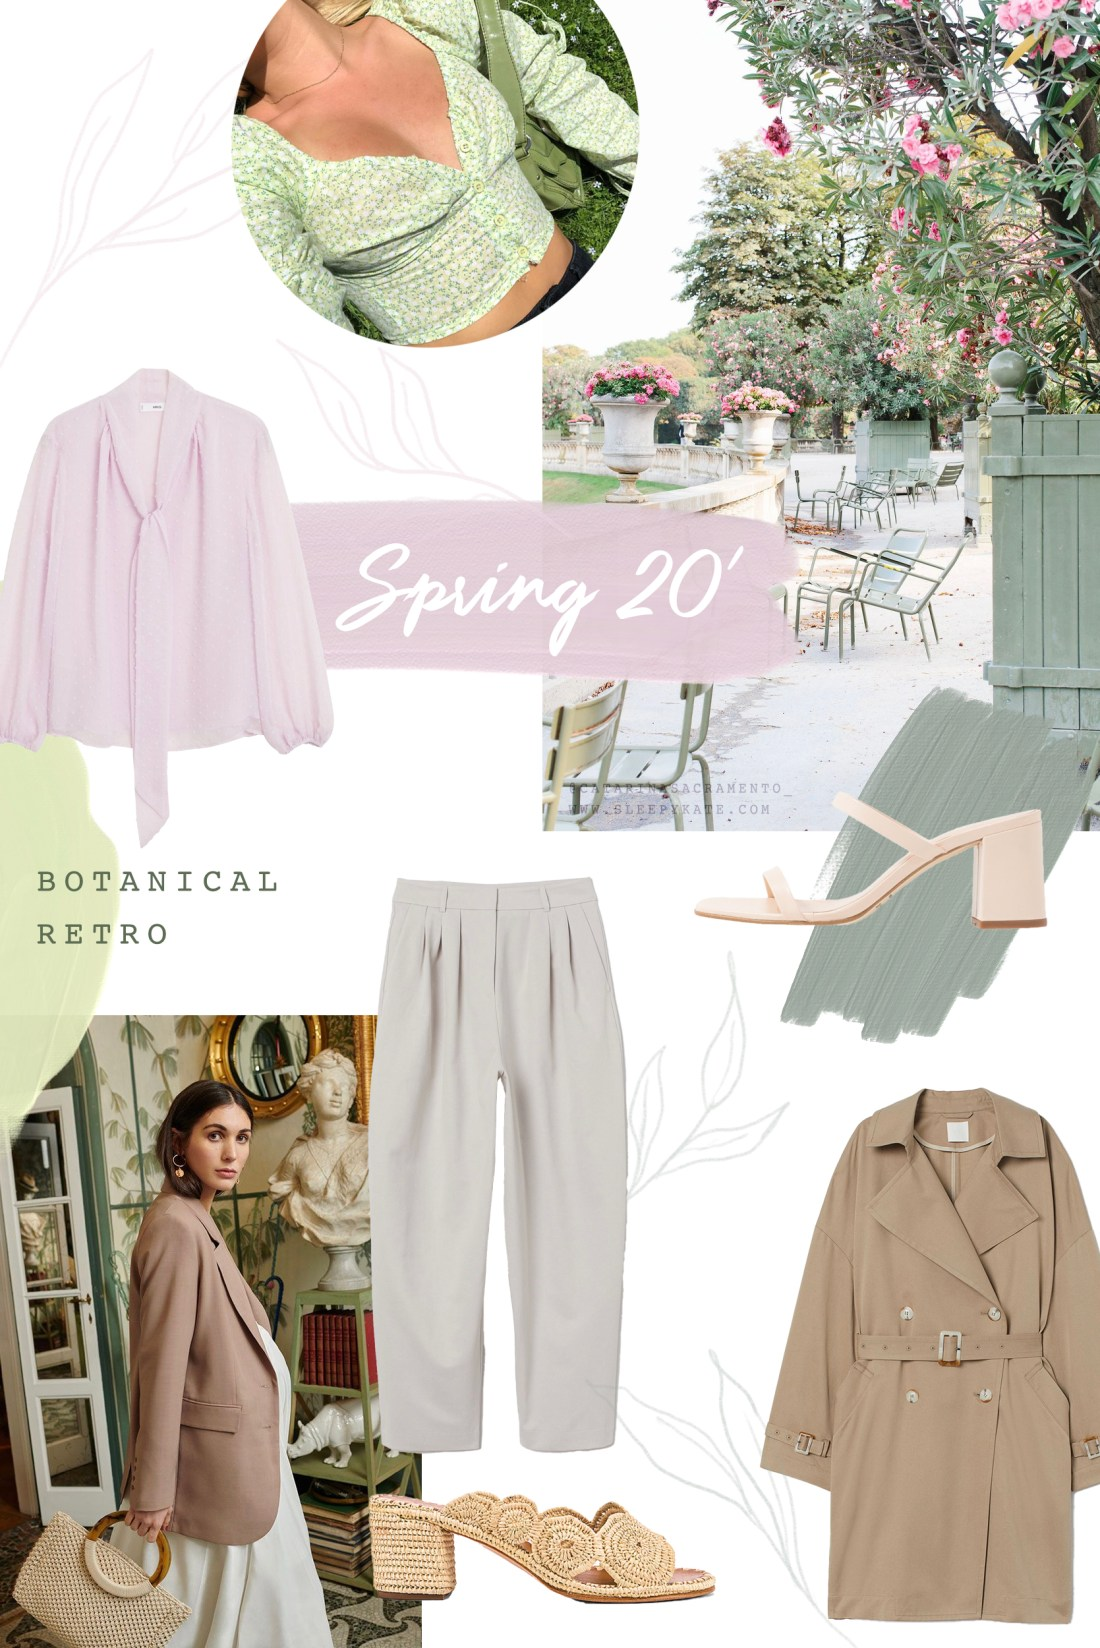 Mes inspiration mode pour le printemps 2020 - Sleepy Kate